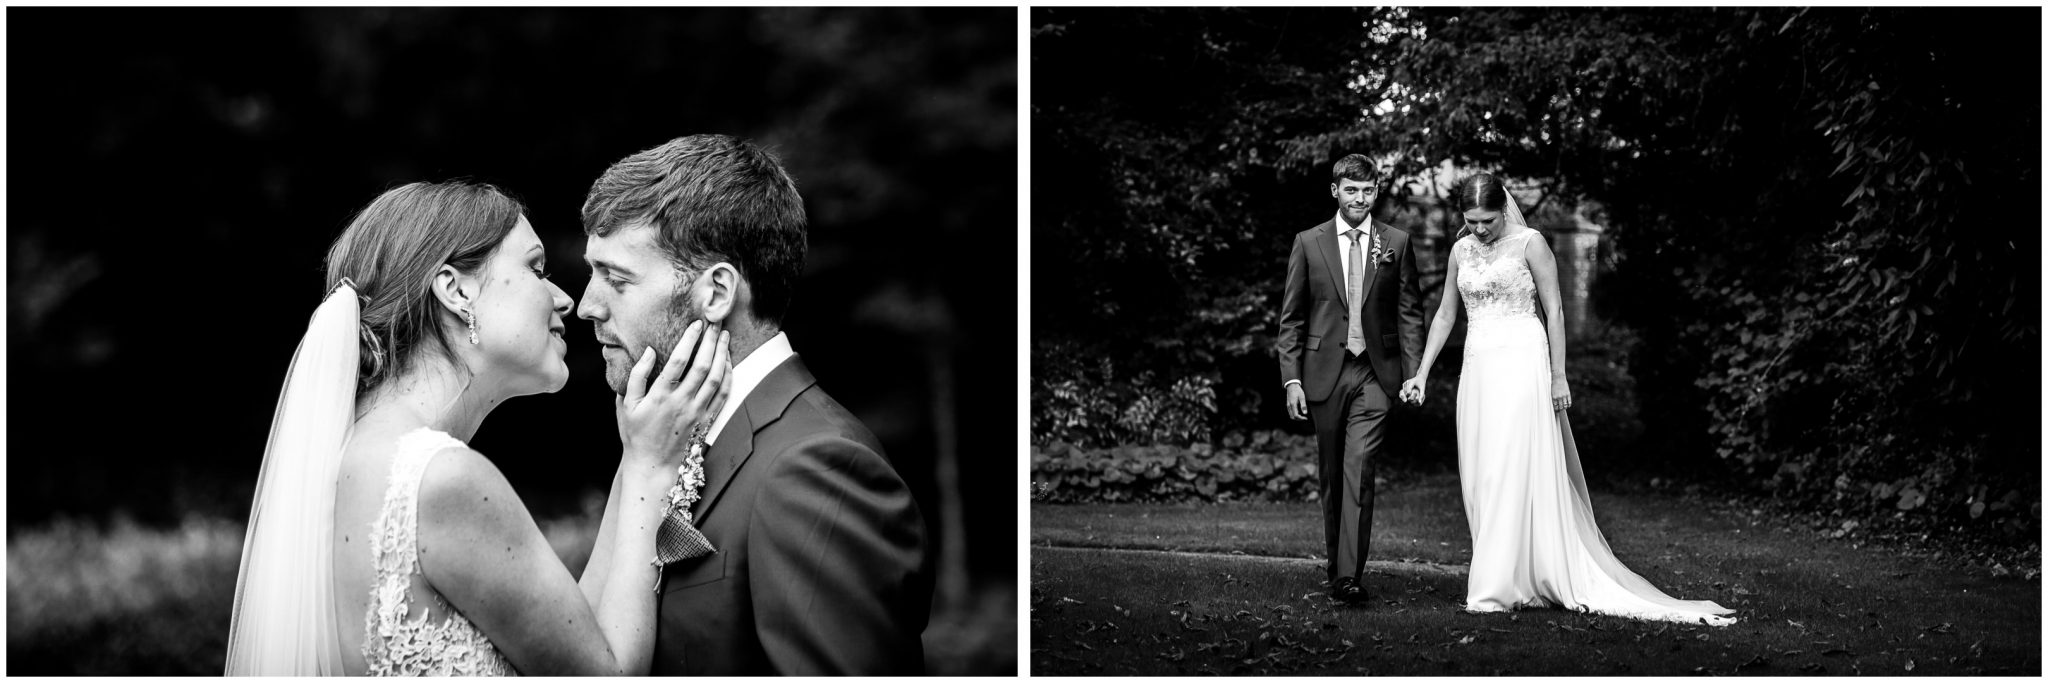 Old Alresford Place wedding photography couple portraits in gardens